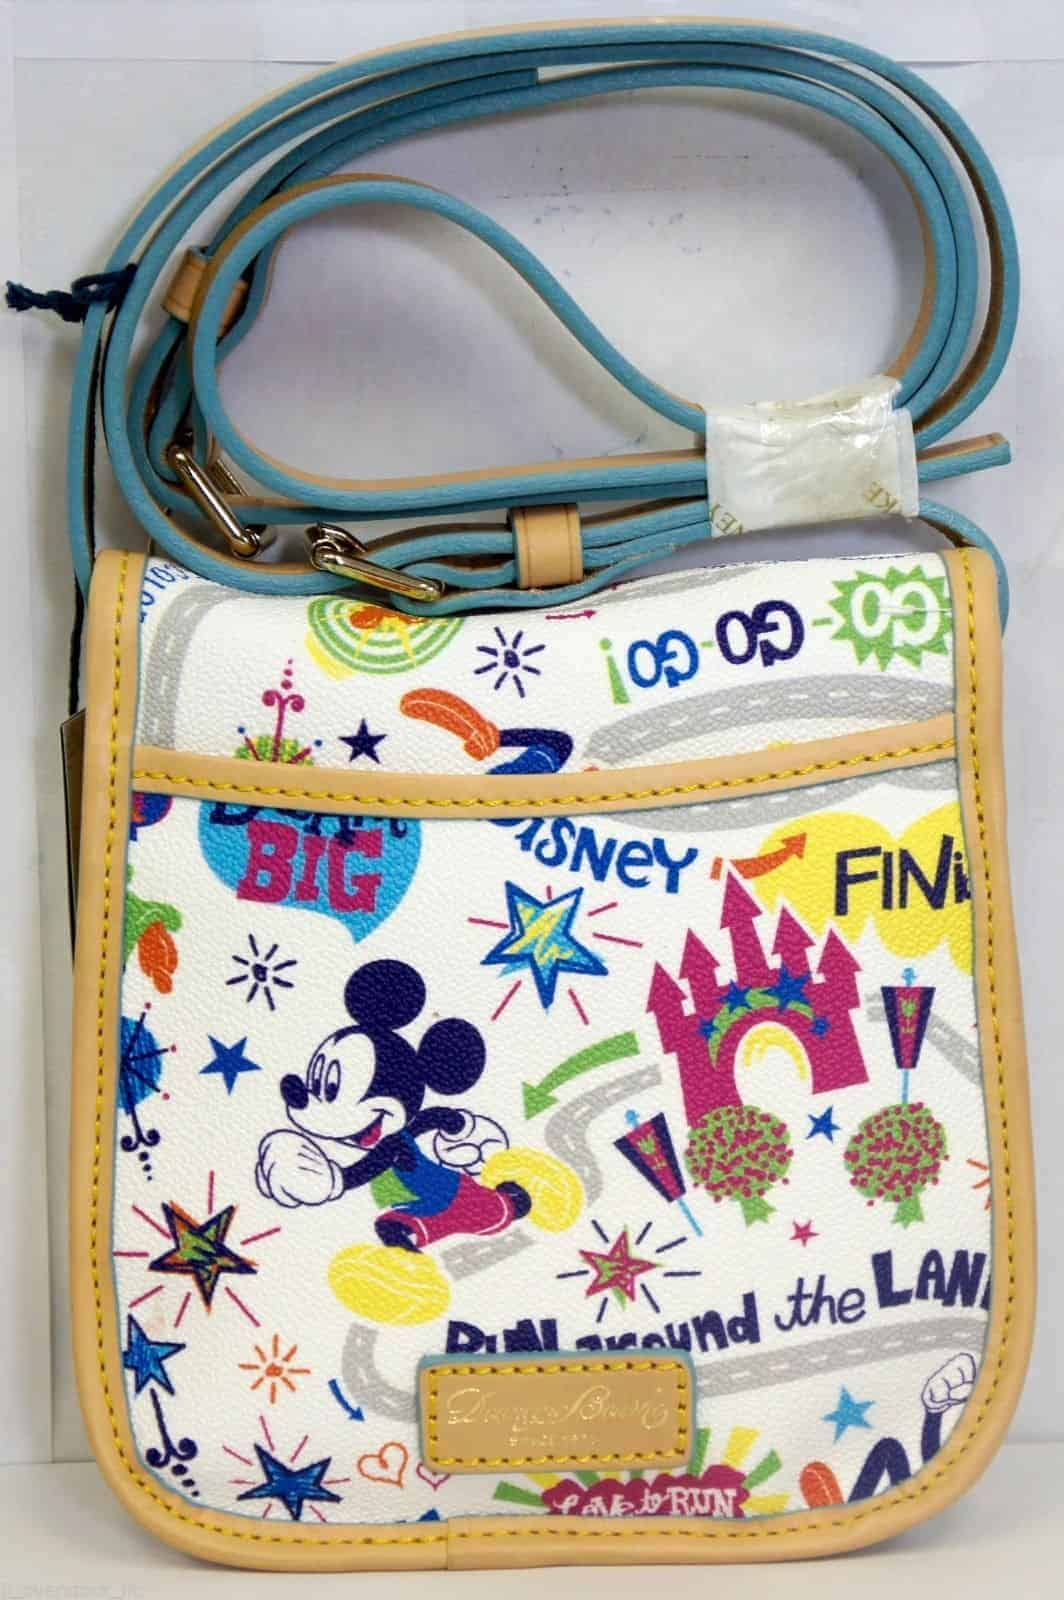 2014 Disneyland Half Small Crossbody (back)